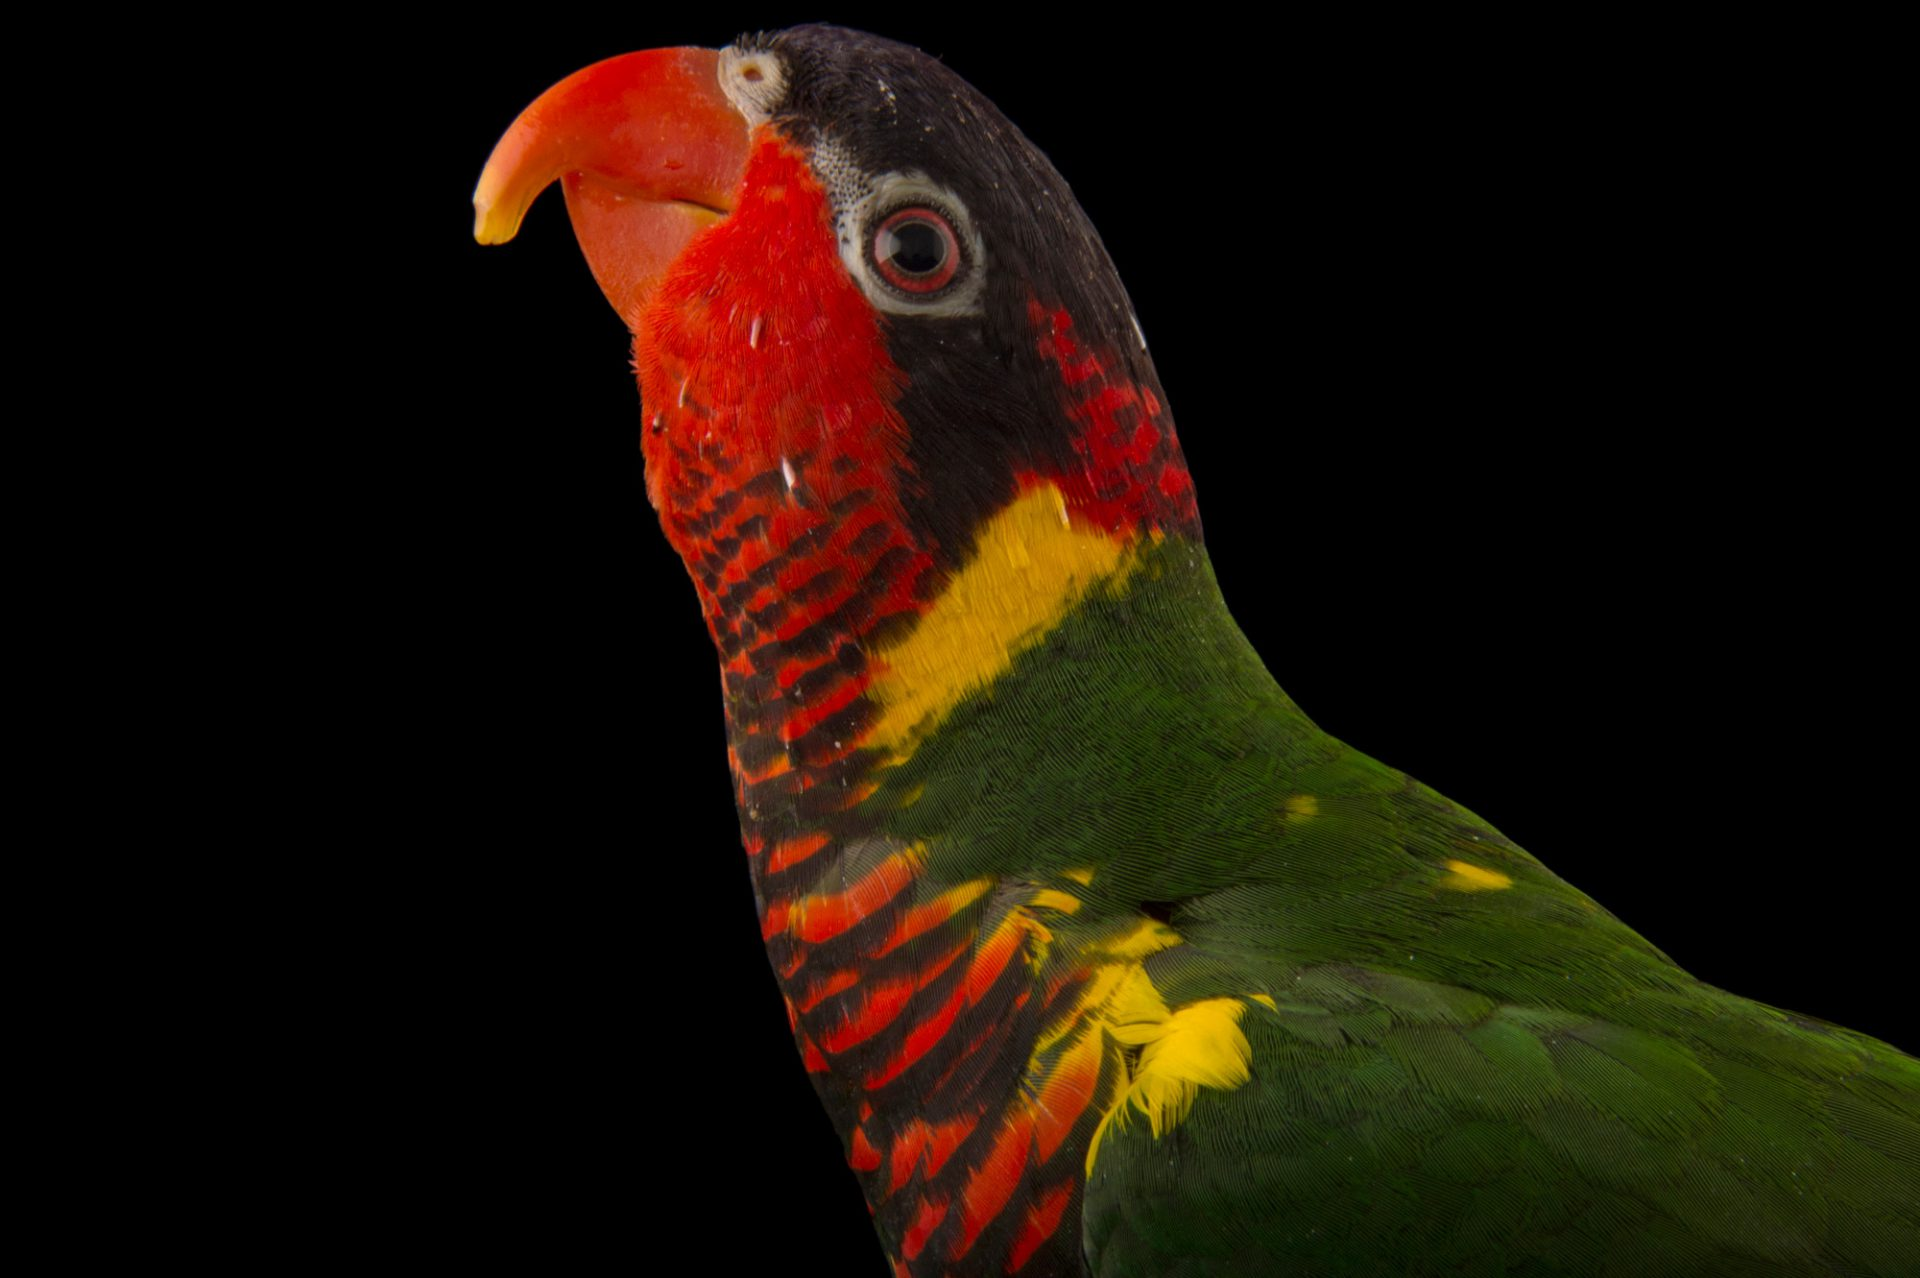 Photo: Chica, an ornate lorikeet (Trichoglossus ornatus) at the Boonshoft Museum.